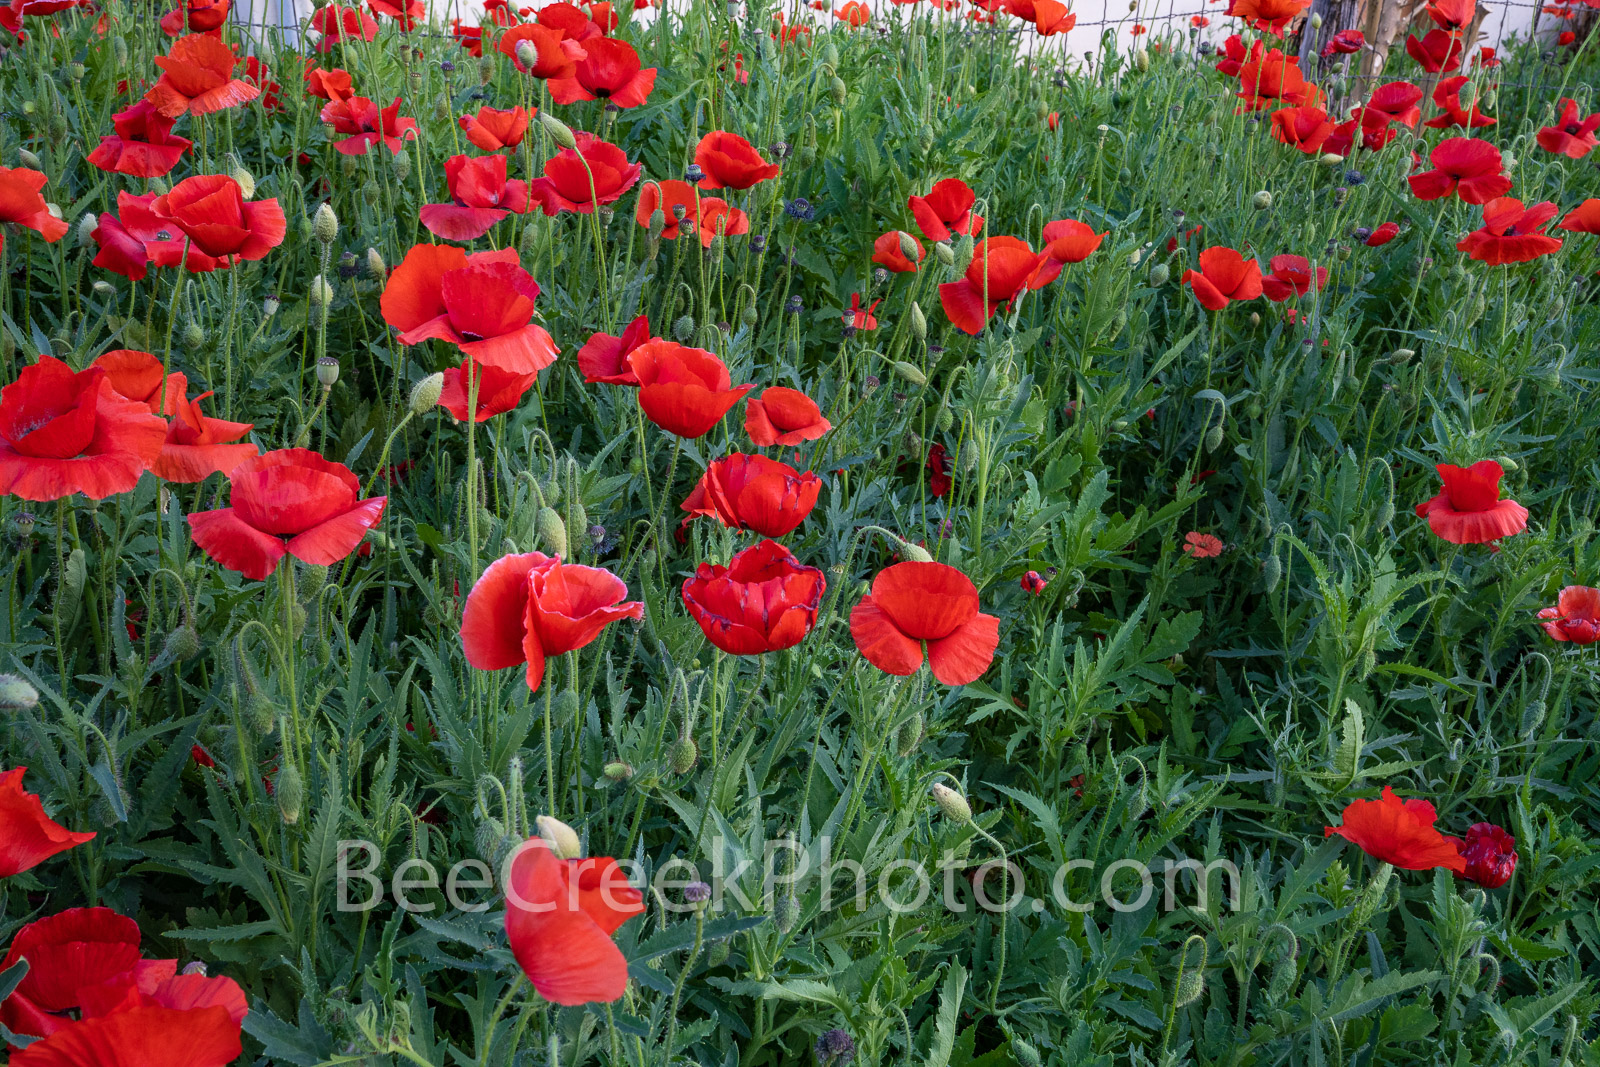 Red Poppies  - We love this house with a row of red corn poppies in front.  We captured this in front of this small stone house...